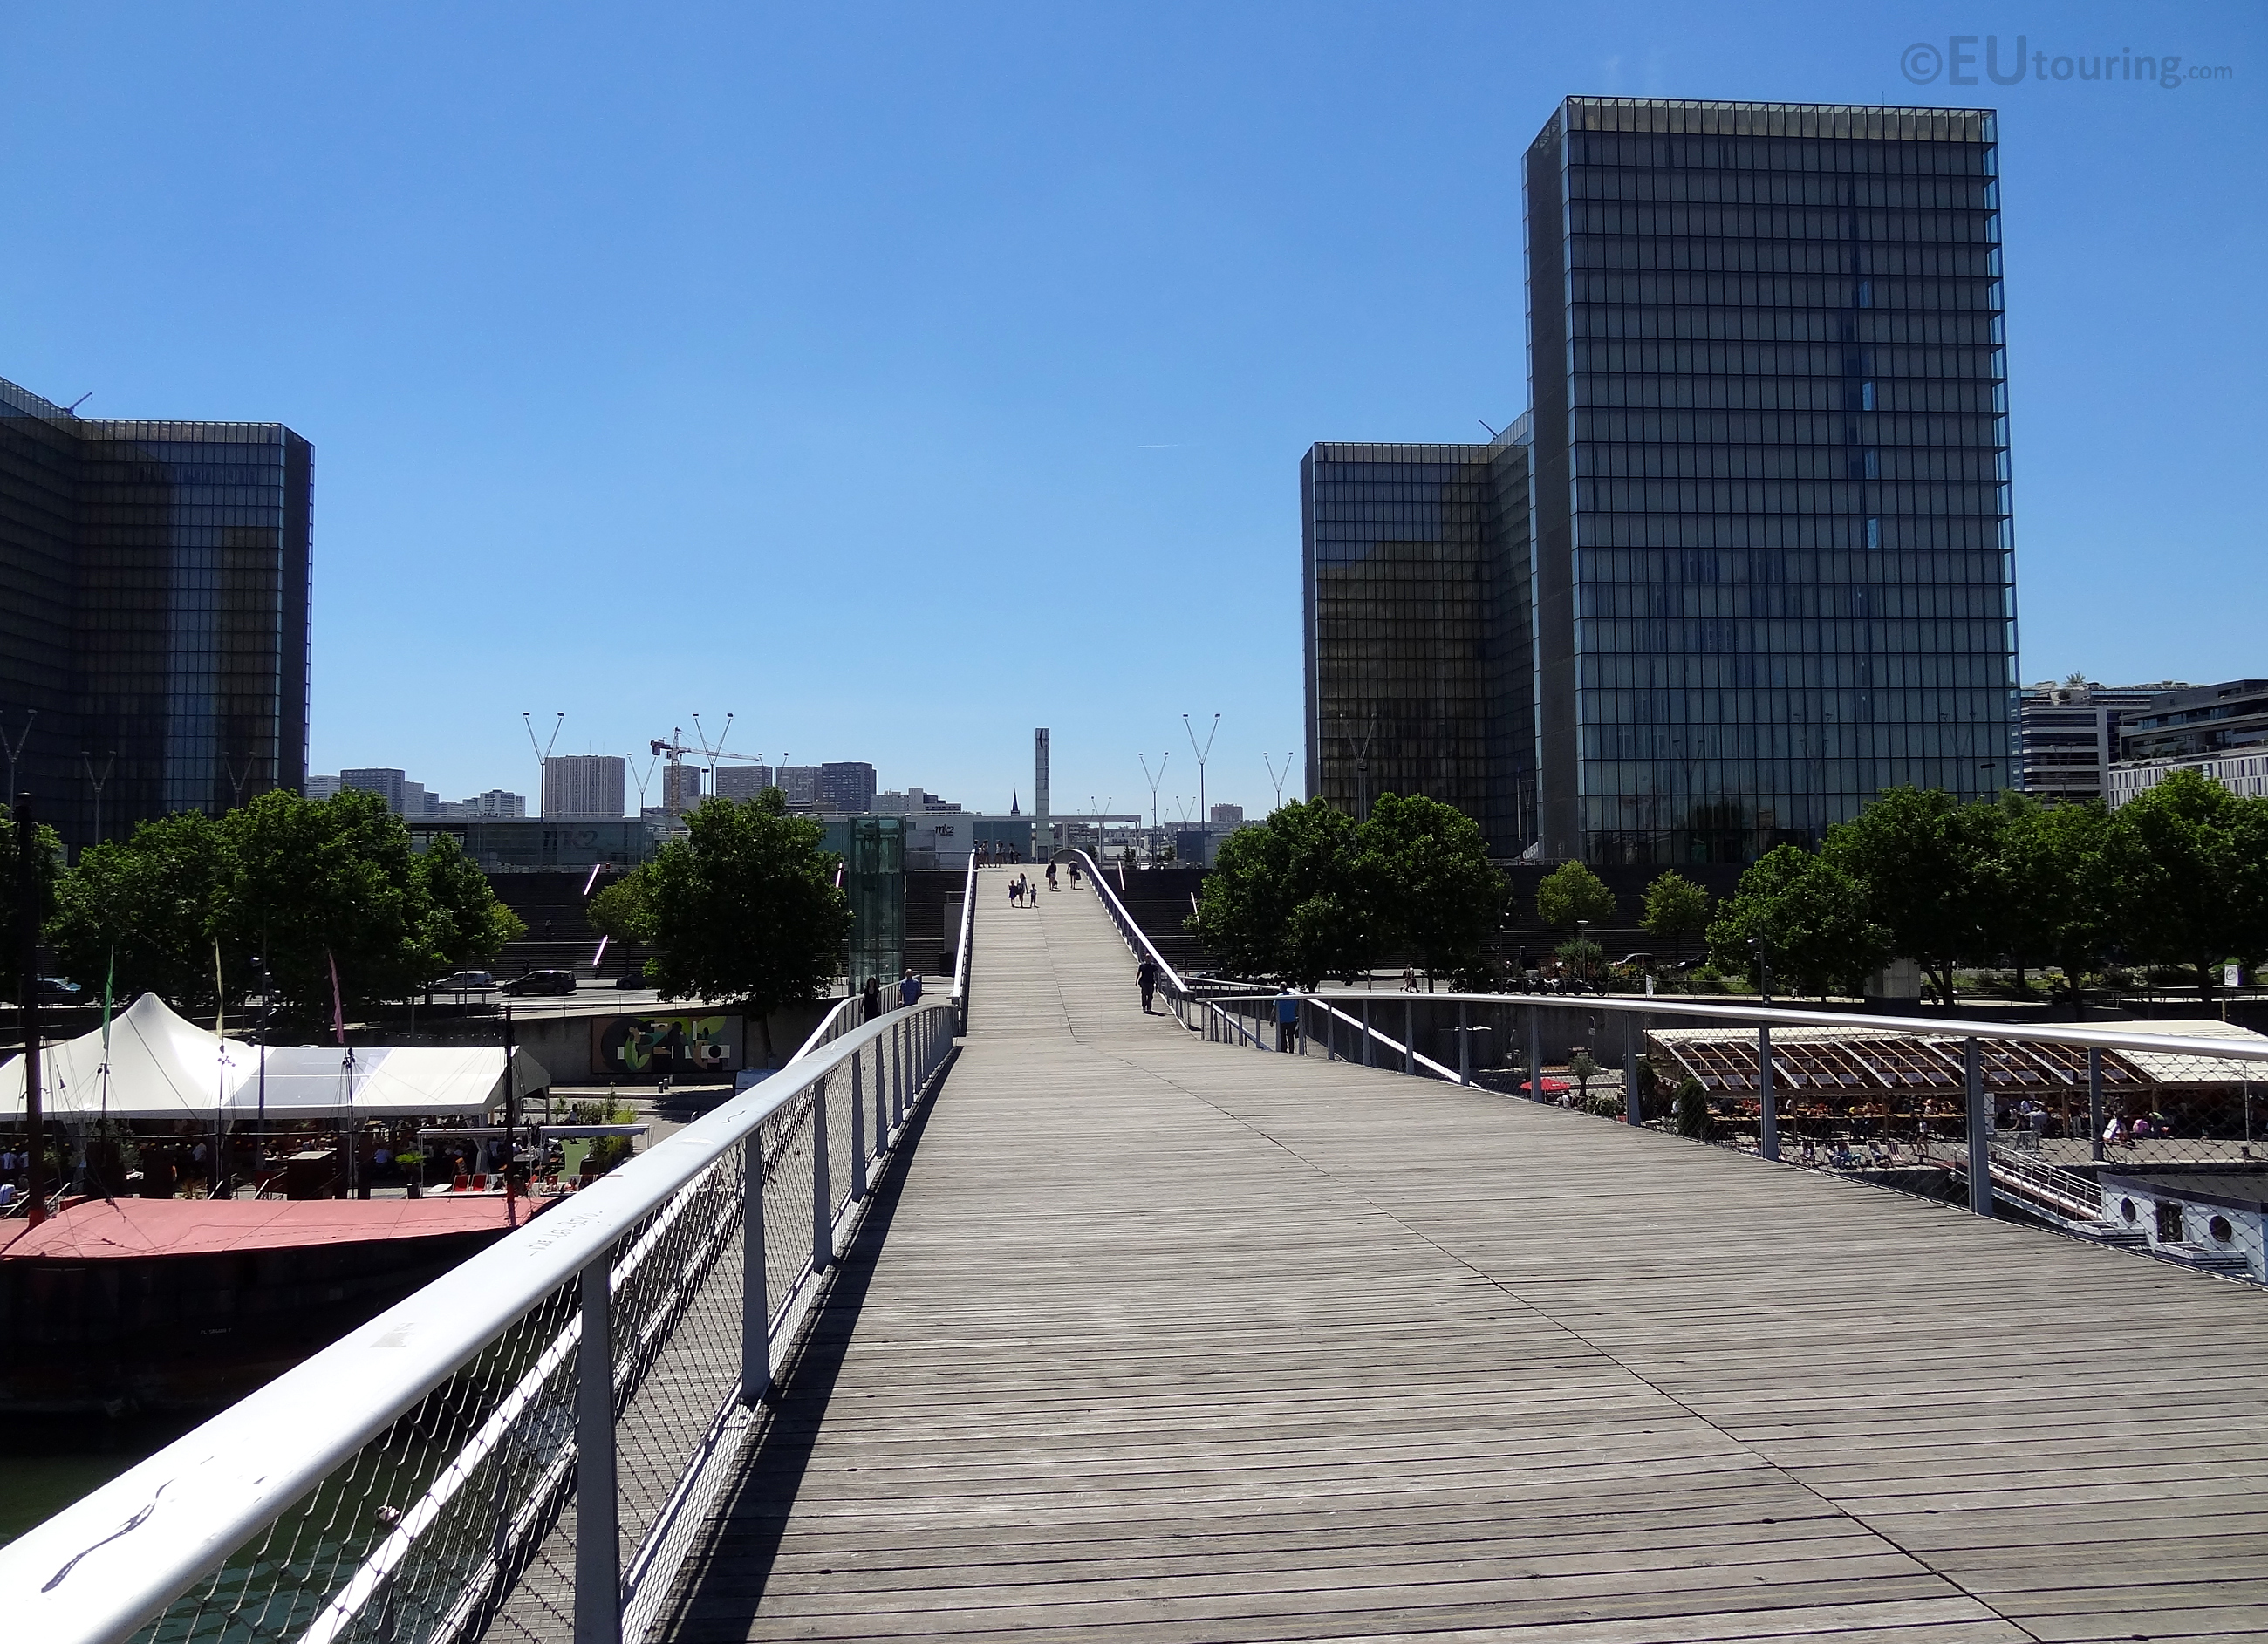 From the top of the Passerelle Simone de Beauvoir